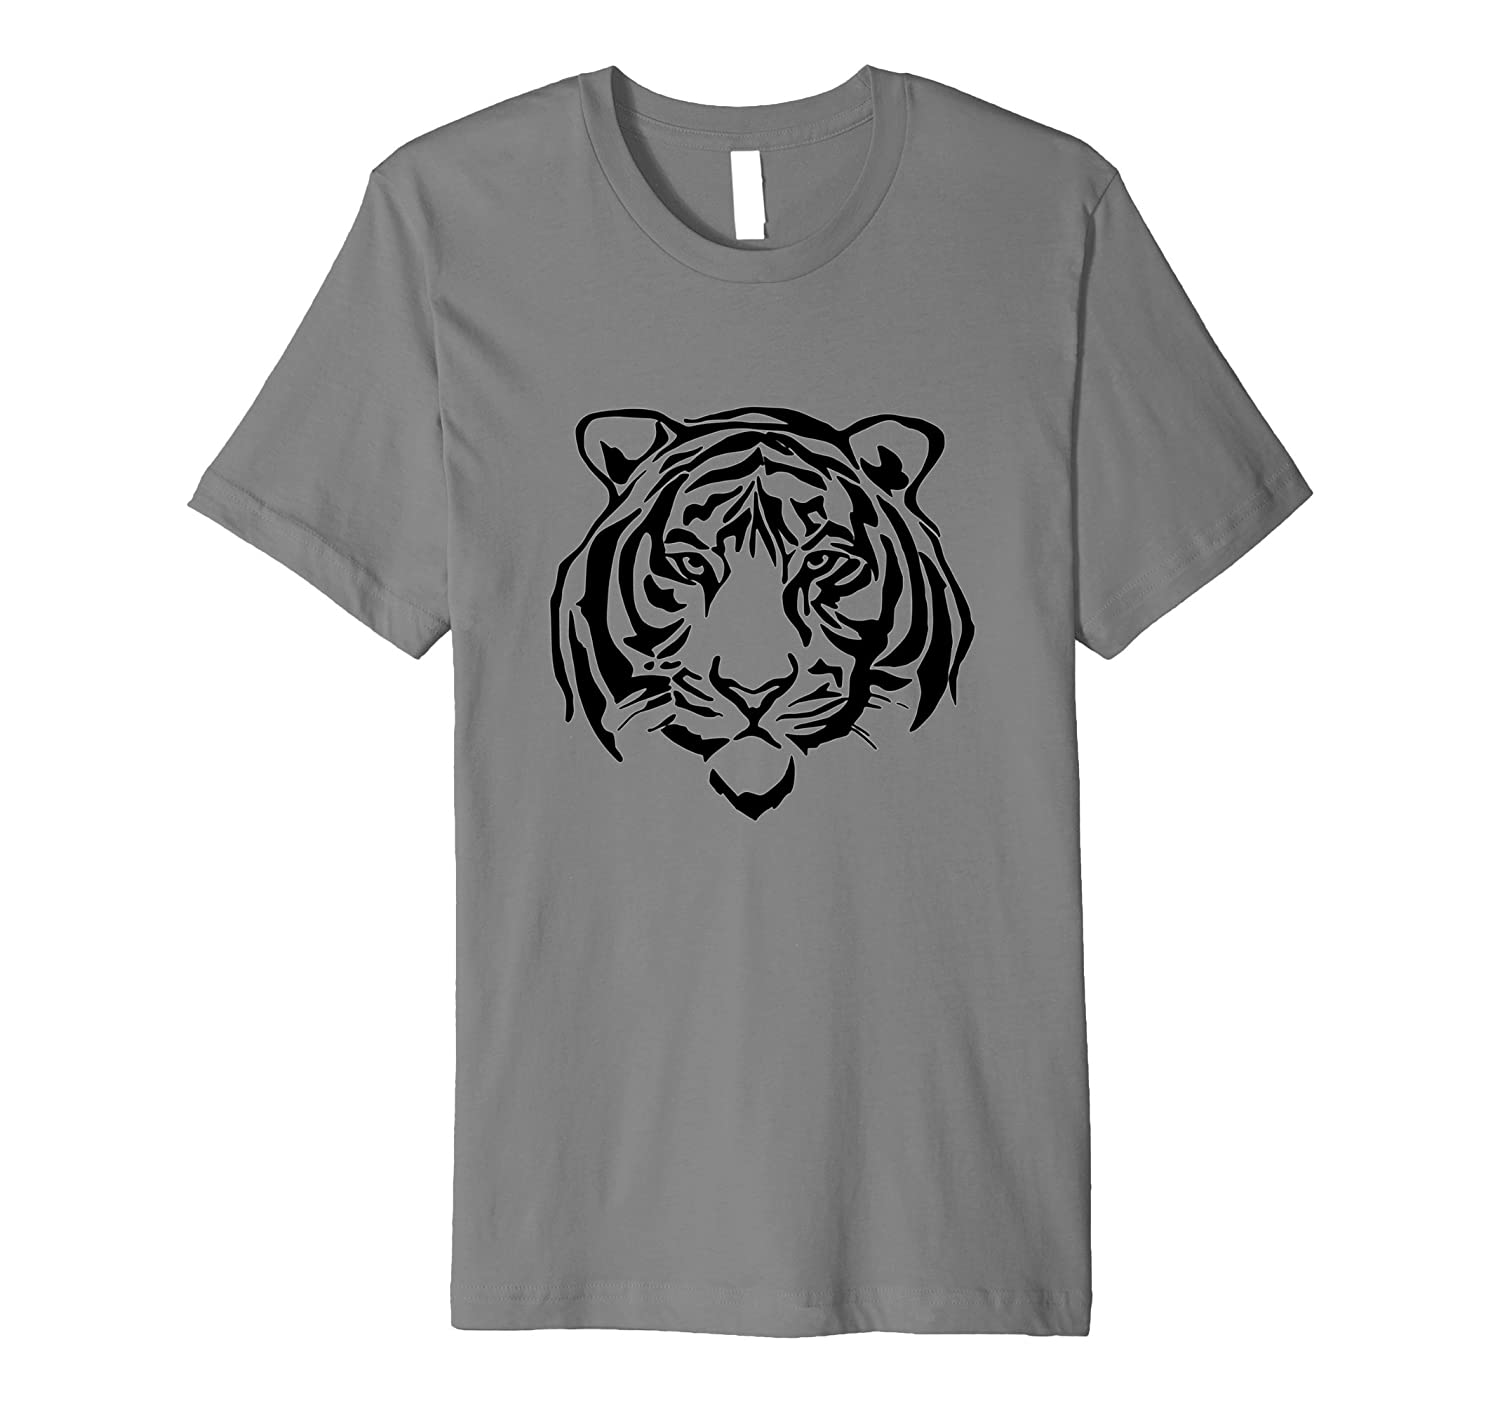 !!! New 'Black Tiger' T-Shirt by SB Design Studios !!!-ANZ